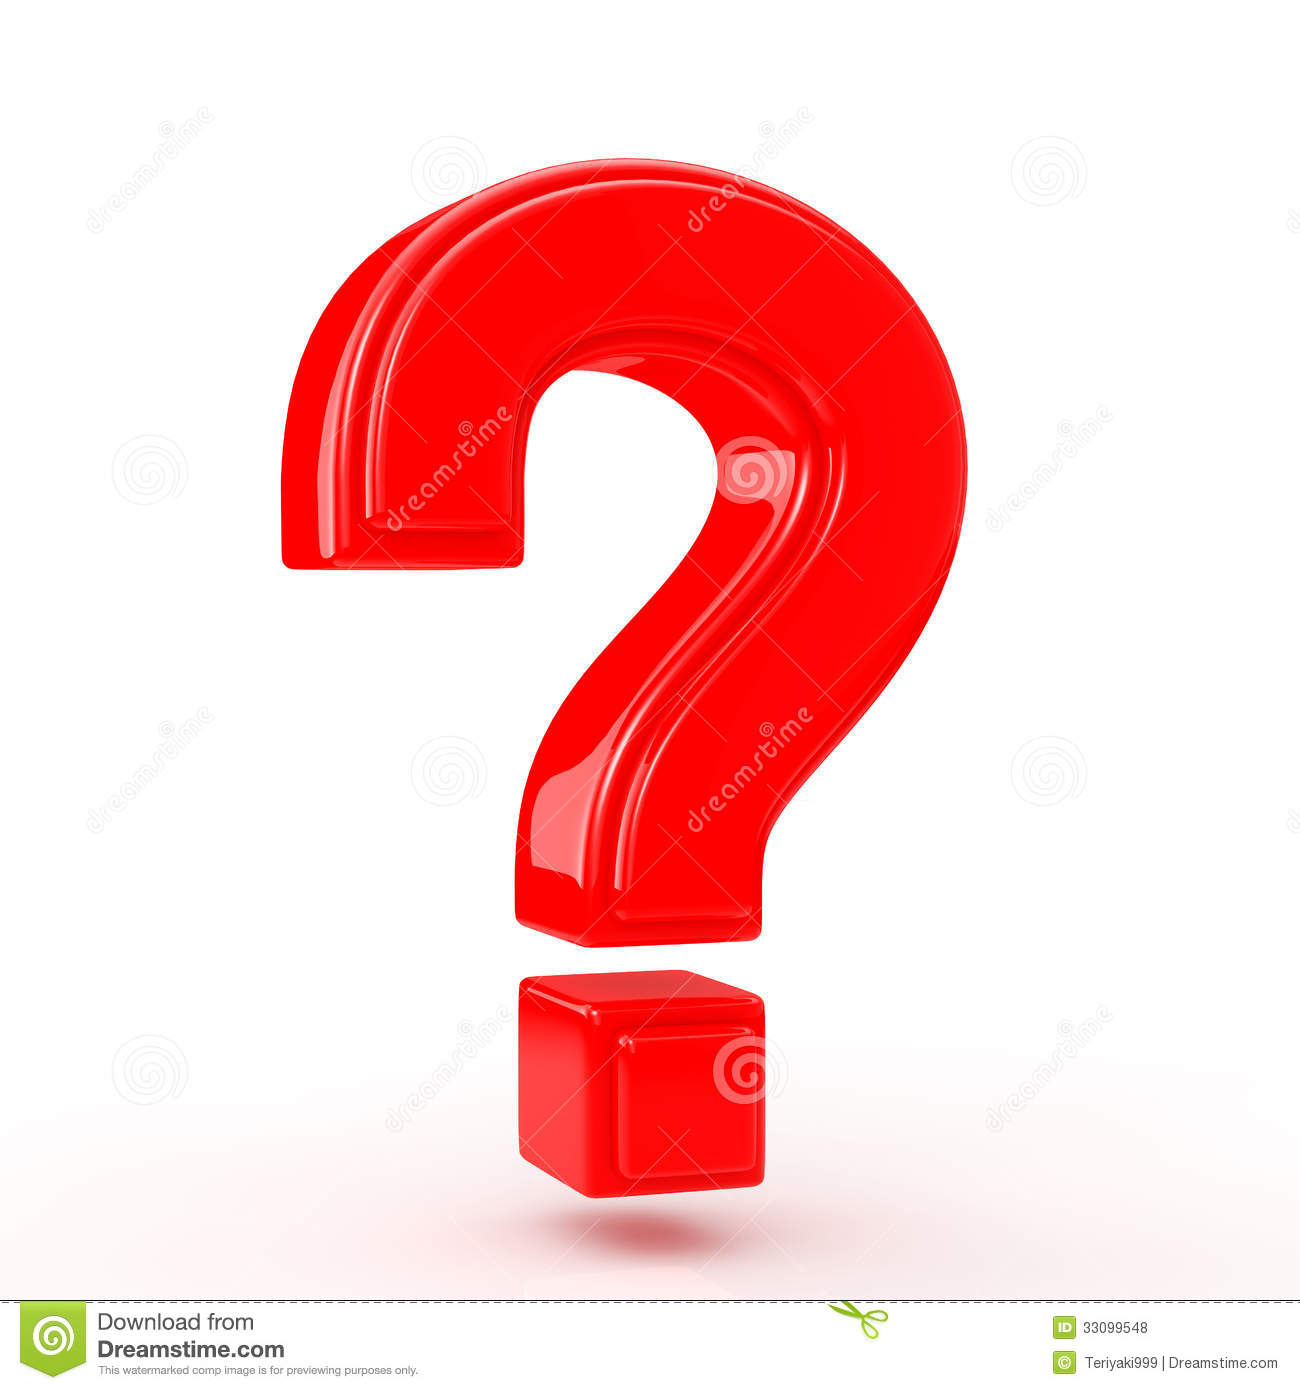 Red Question Mark Royalty Free Stock Photos - Image: 33099548